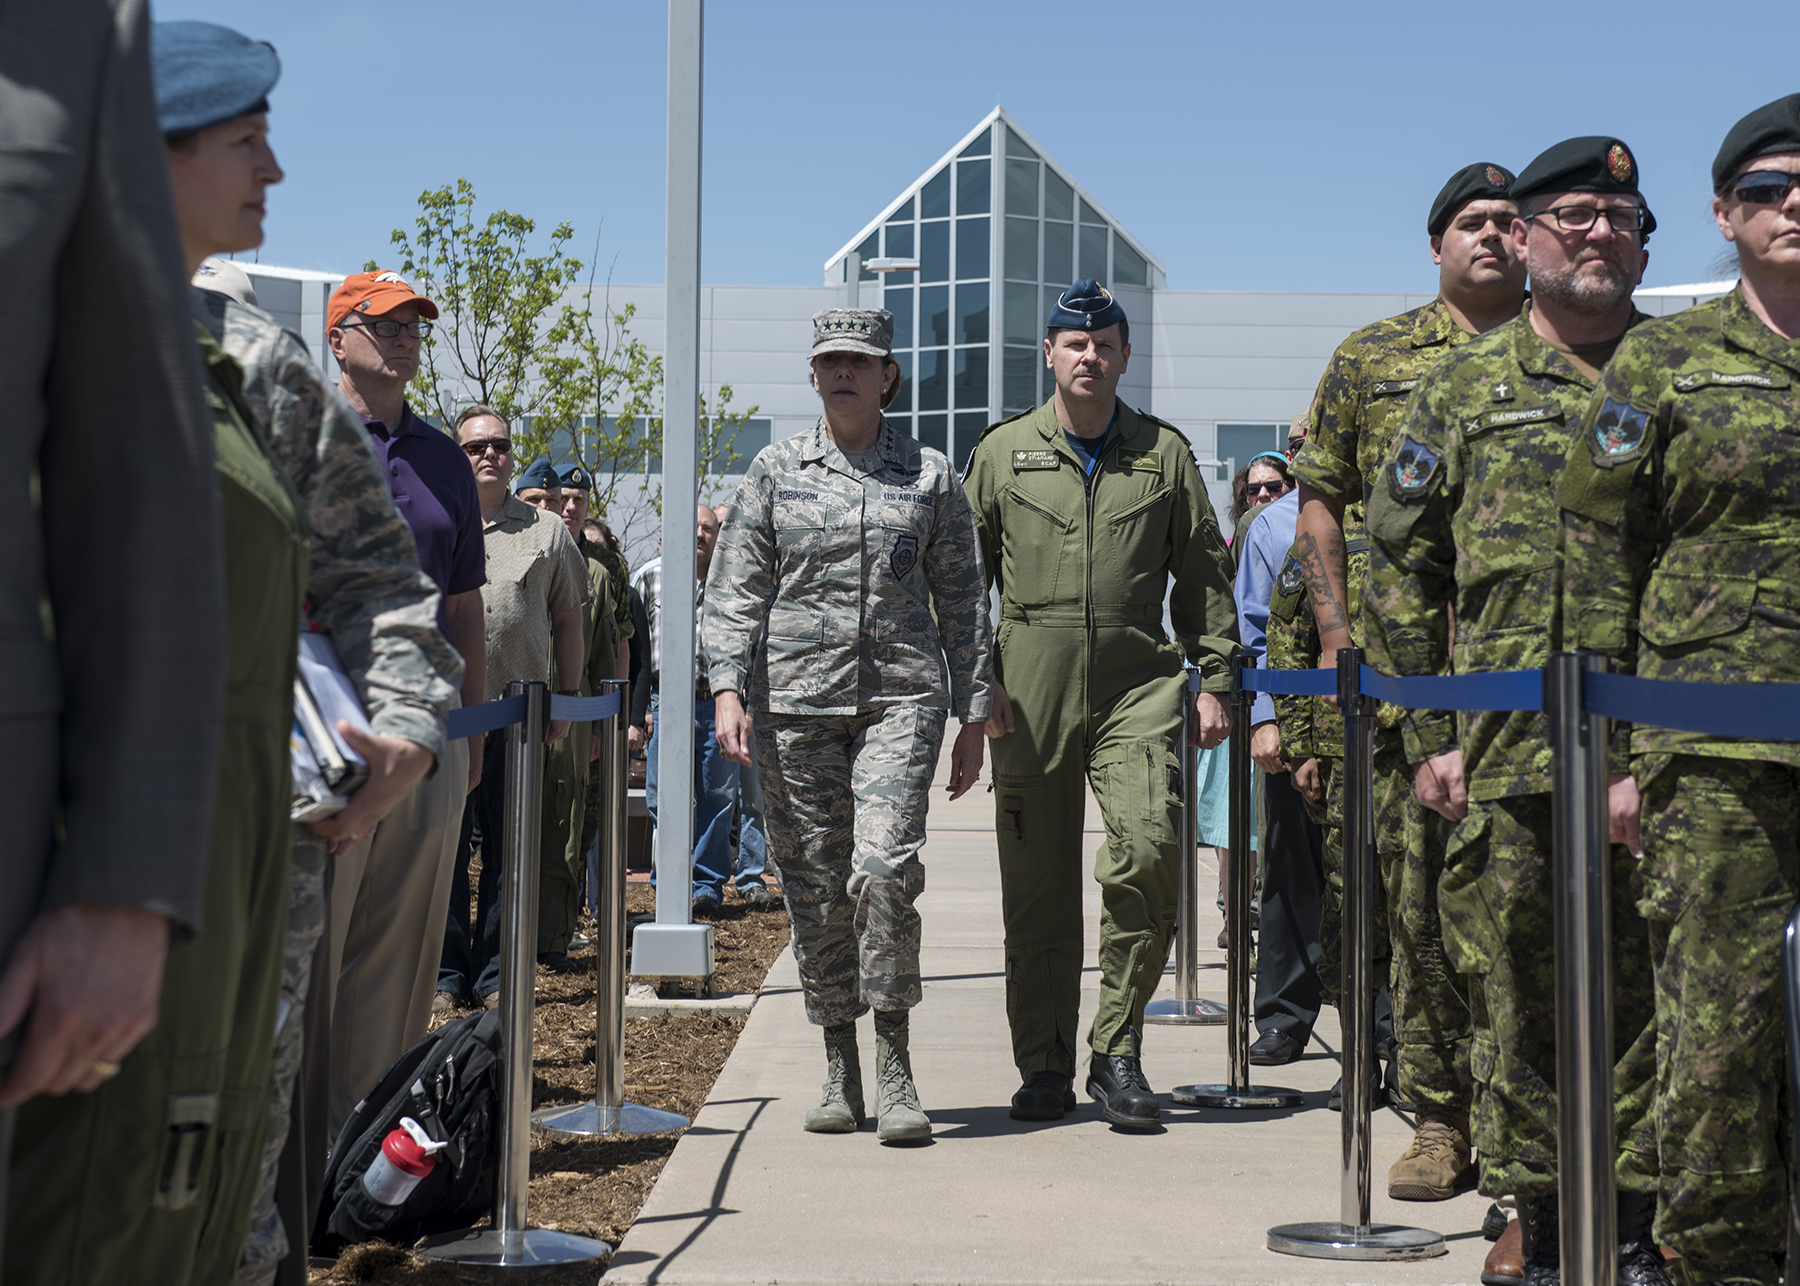 U.S. Air Force General Lori Robinson, Commander of the North American Aerospace Defense Command, and U.S. Northern Command and Canadian Lieutenant-General Pierre St-Amand, the NORAD Deputy Commander, approach for the ceremony to unveil a memorial cairn outside the NORAD and USNORTHCOM headquarters building on Peterson Air Force Base, Colorado, on May 11, 2018. The placement and dedication of the cairn was conducted in conjunction with the 60th Anniversary of NORAD and the U.S. Canadian binational NORAD agreement. PHOTO: U.S. DoD, N&NC Public Affairs